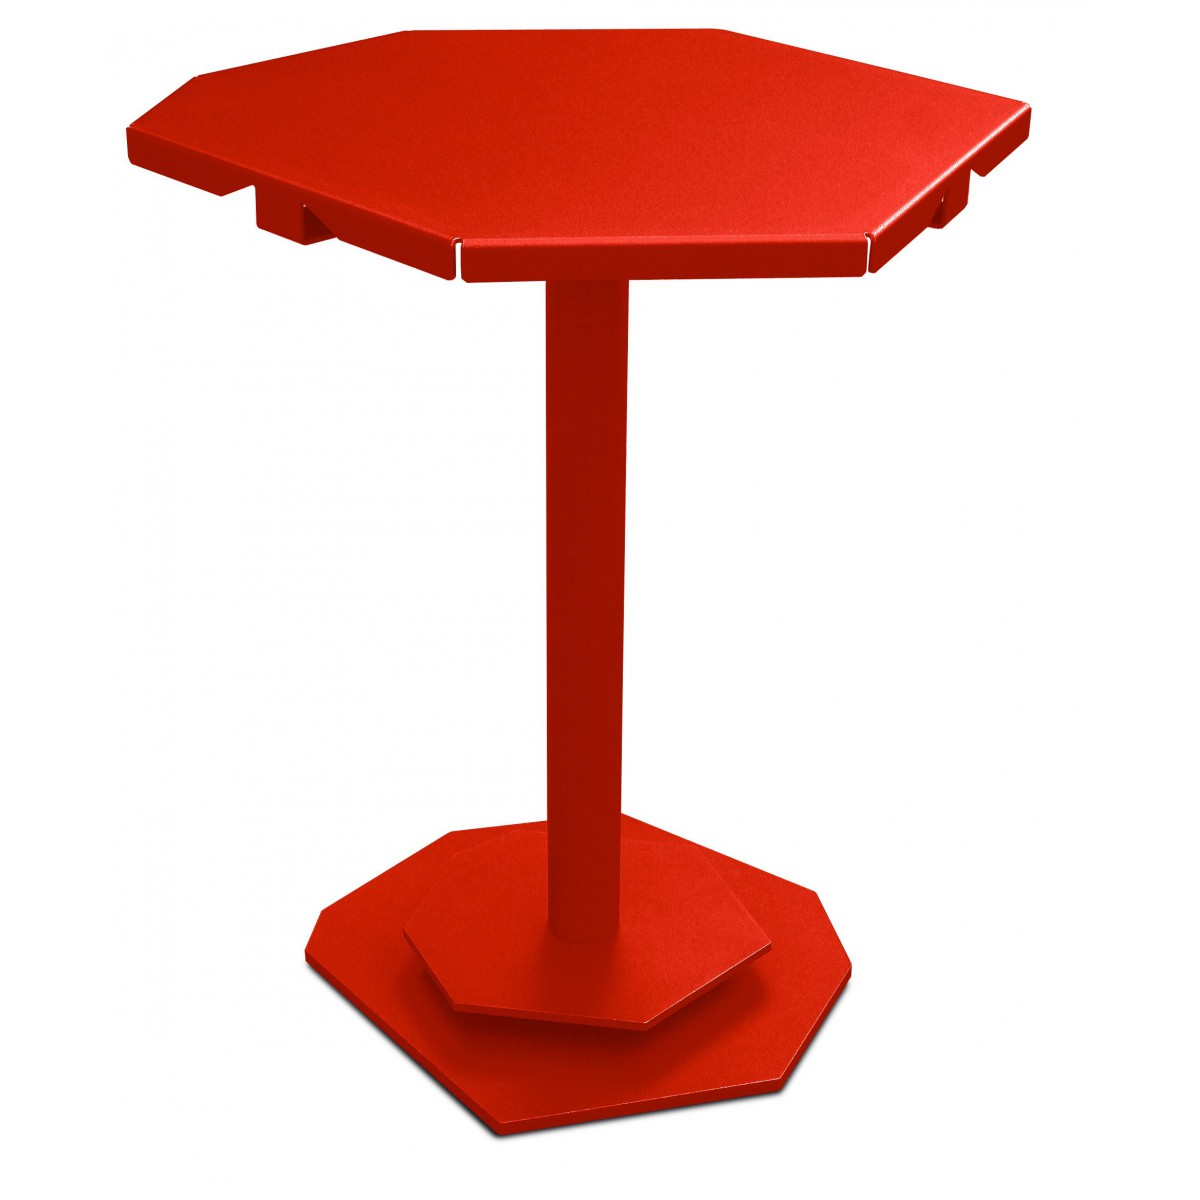 Table Hauteur Ajustable Table Ajustable 2 Hauteurs Pix Minguet Laurent